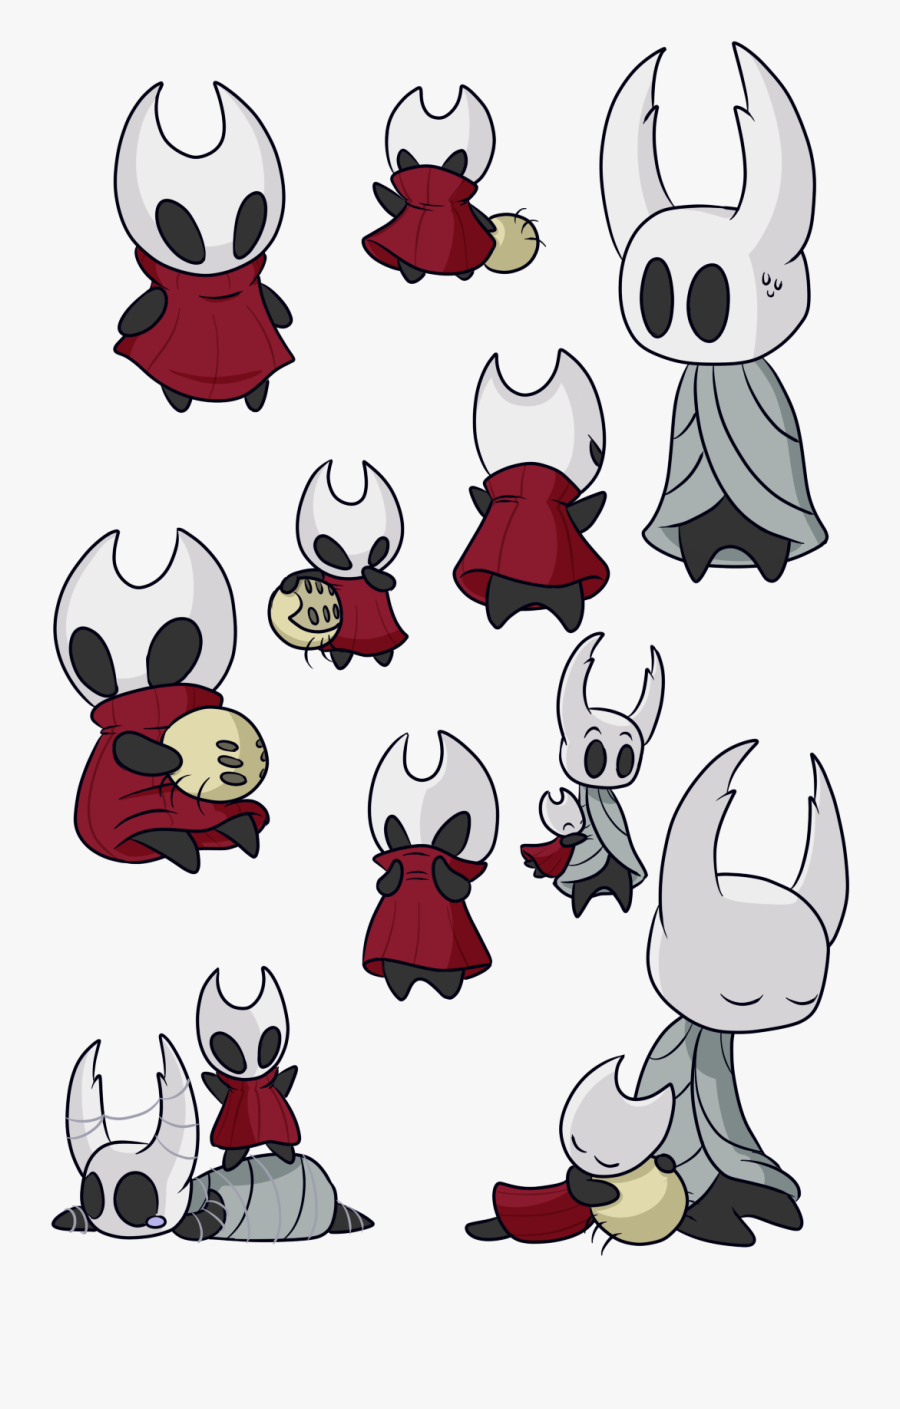 Transparent Destello Blanco Png - Hollow Knight The Knight And Hornet, Transparent Clipart